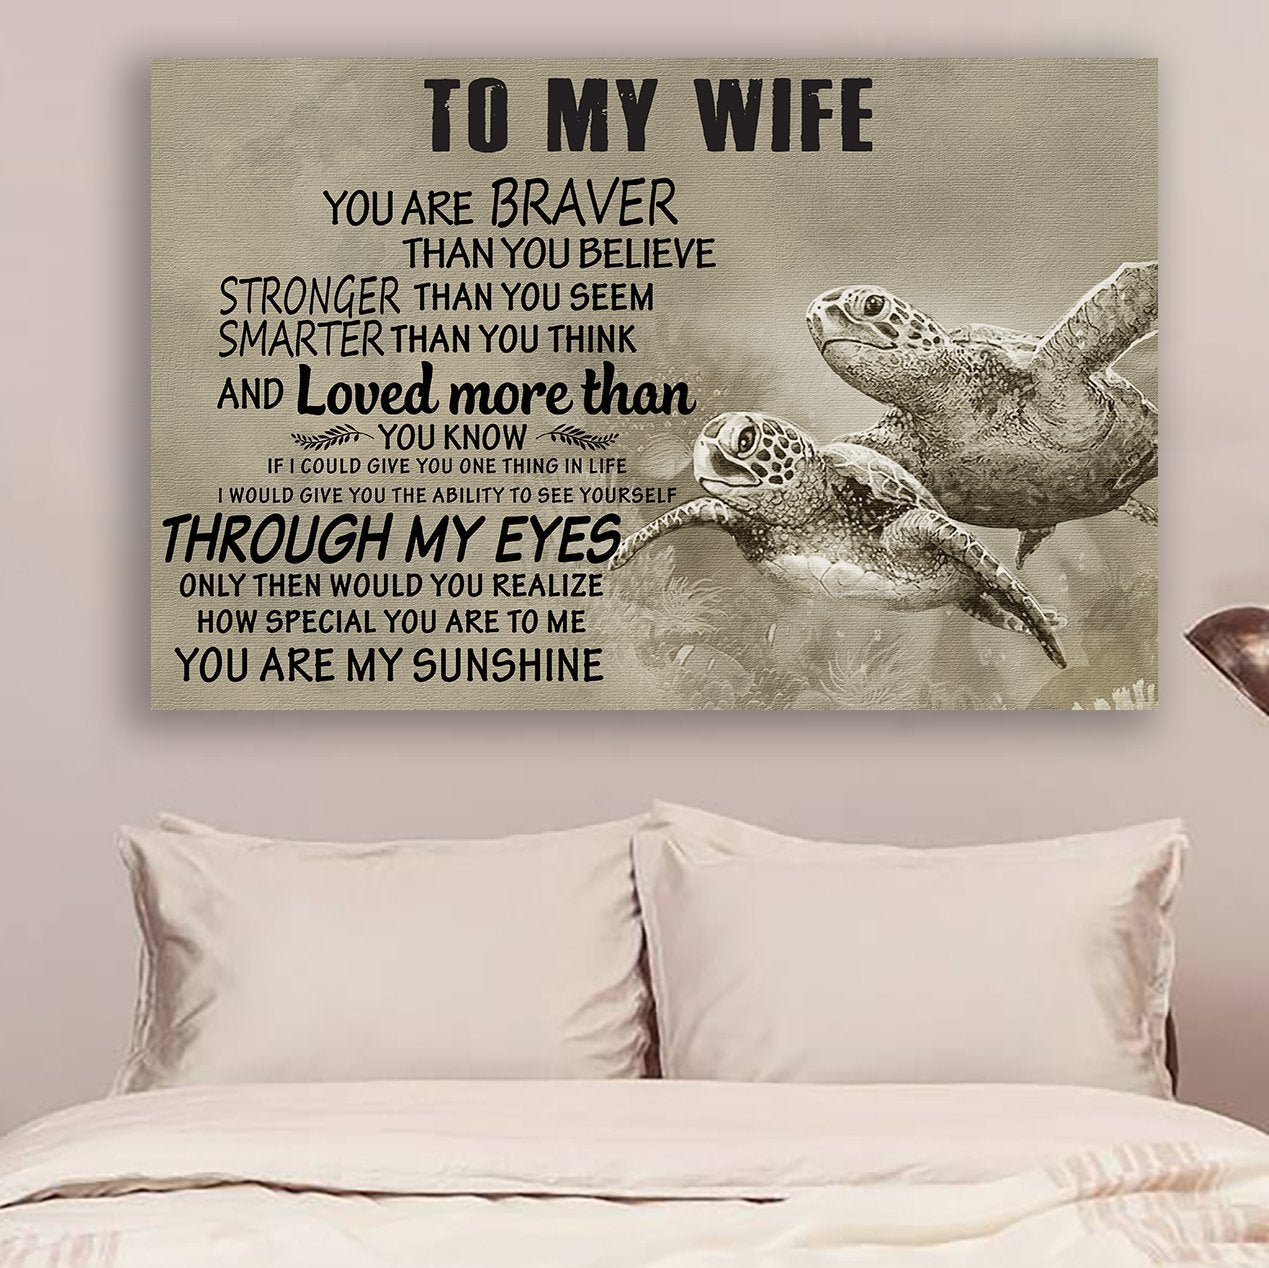 (cv900-B) LHD turtle poster - to wife - you are braver vs1